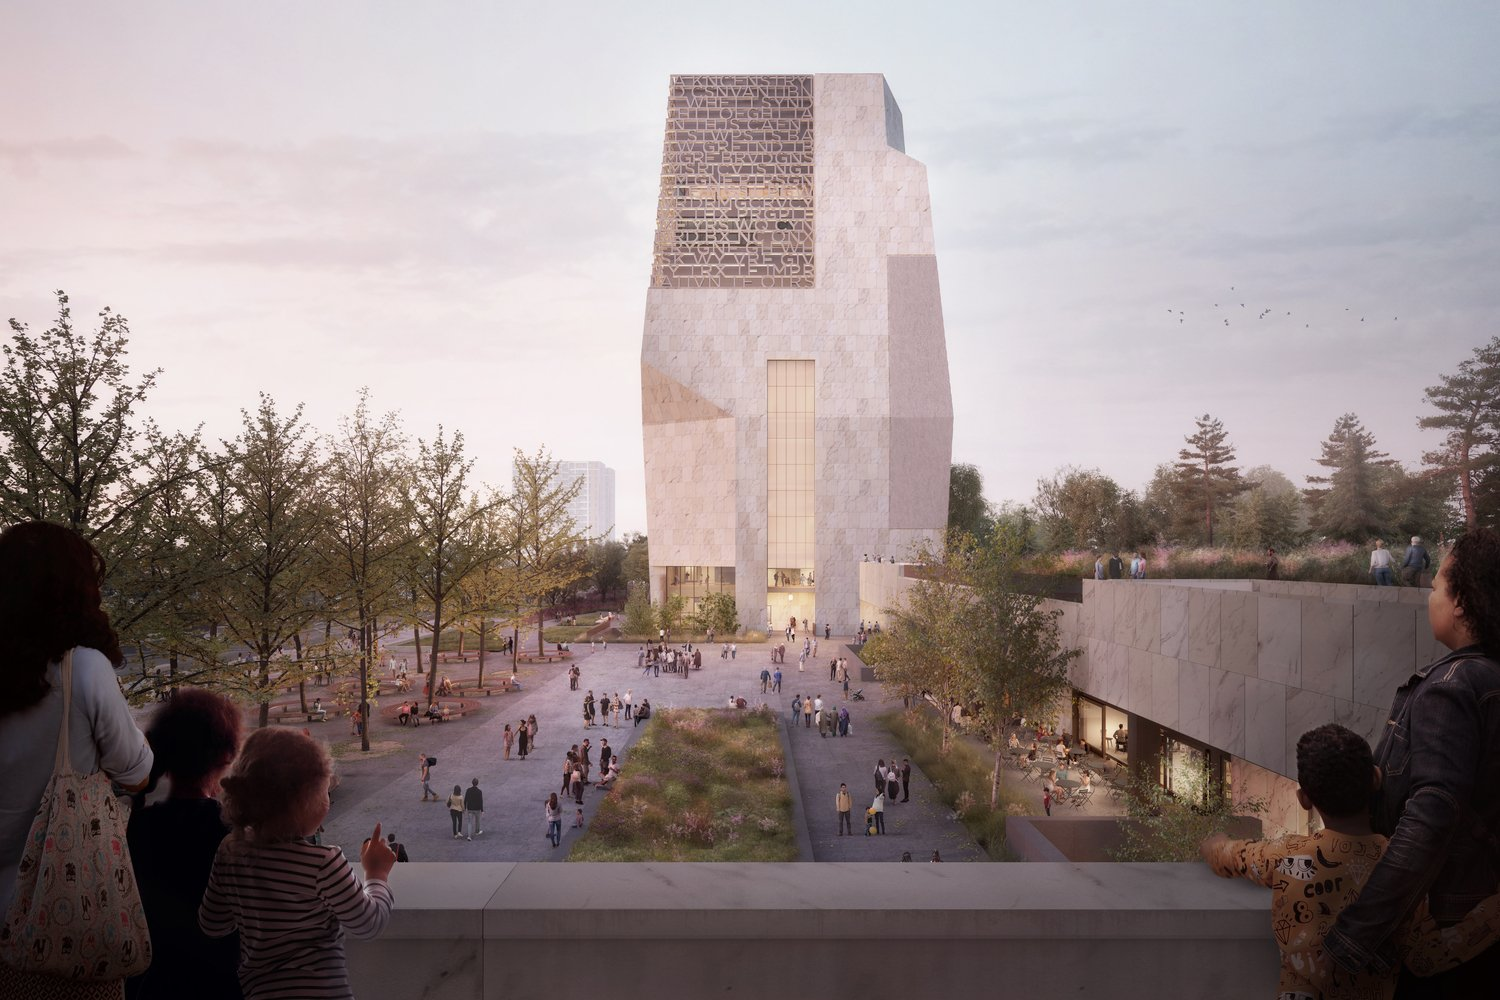 New renderings released for the Obama Presidential Center in Chicago/ Source: Courtesy of the Obama Foundation